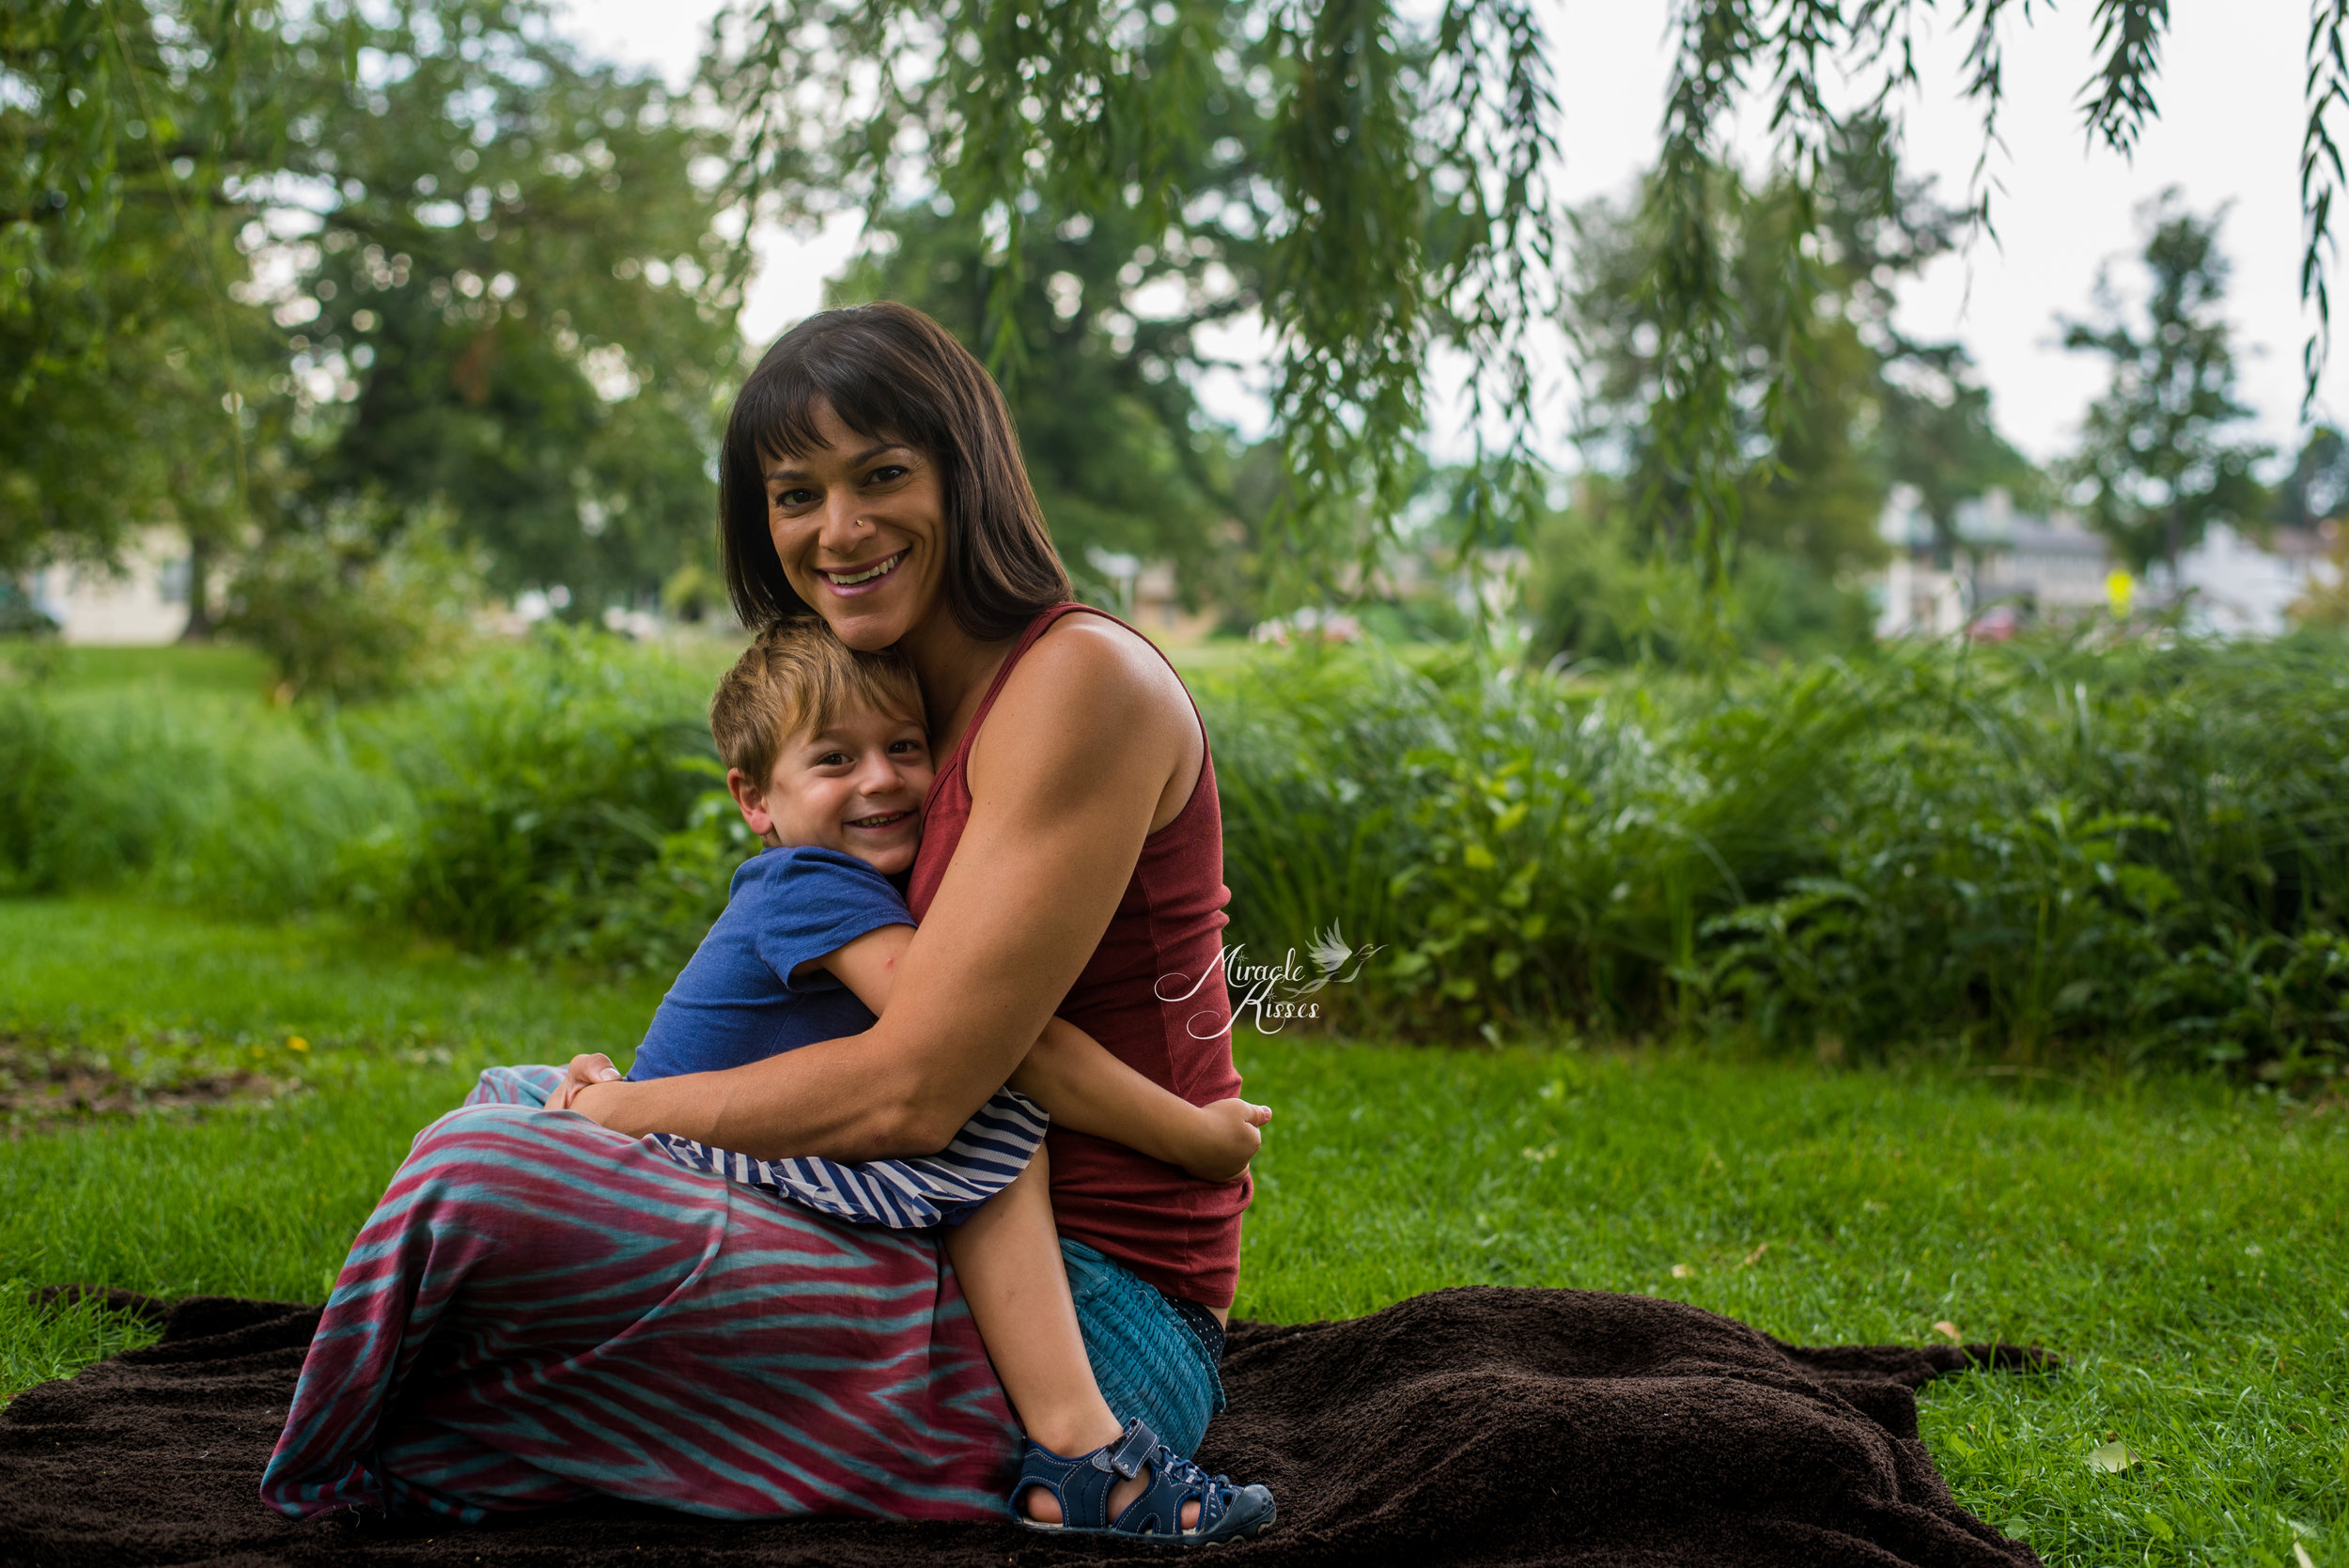 parenting advice, setting boundaries, mommy and me, miracle kisses photography